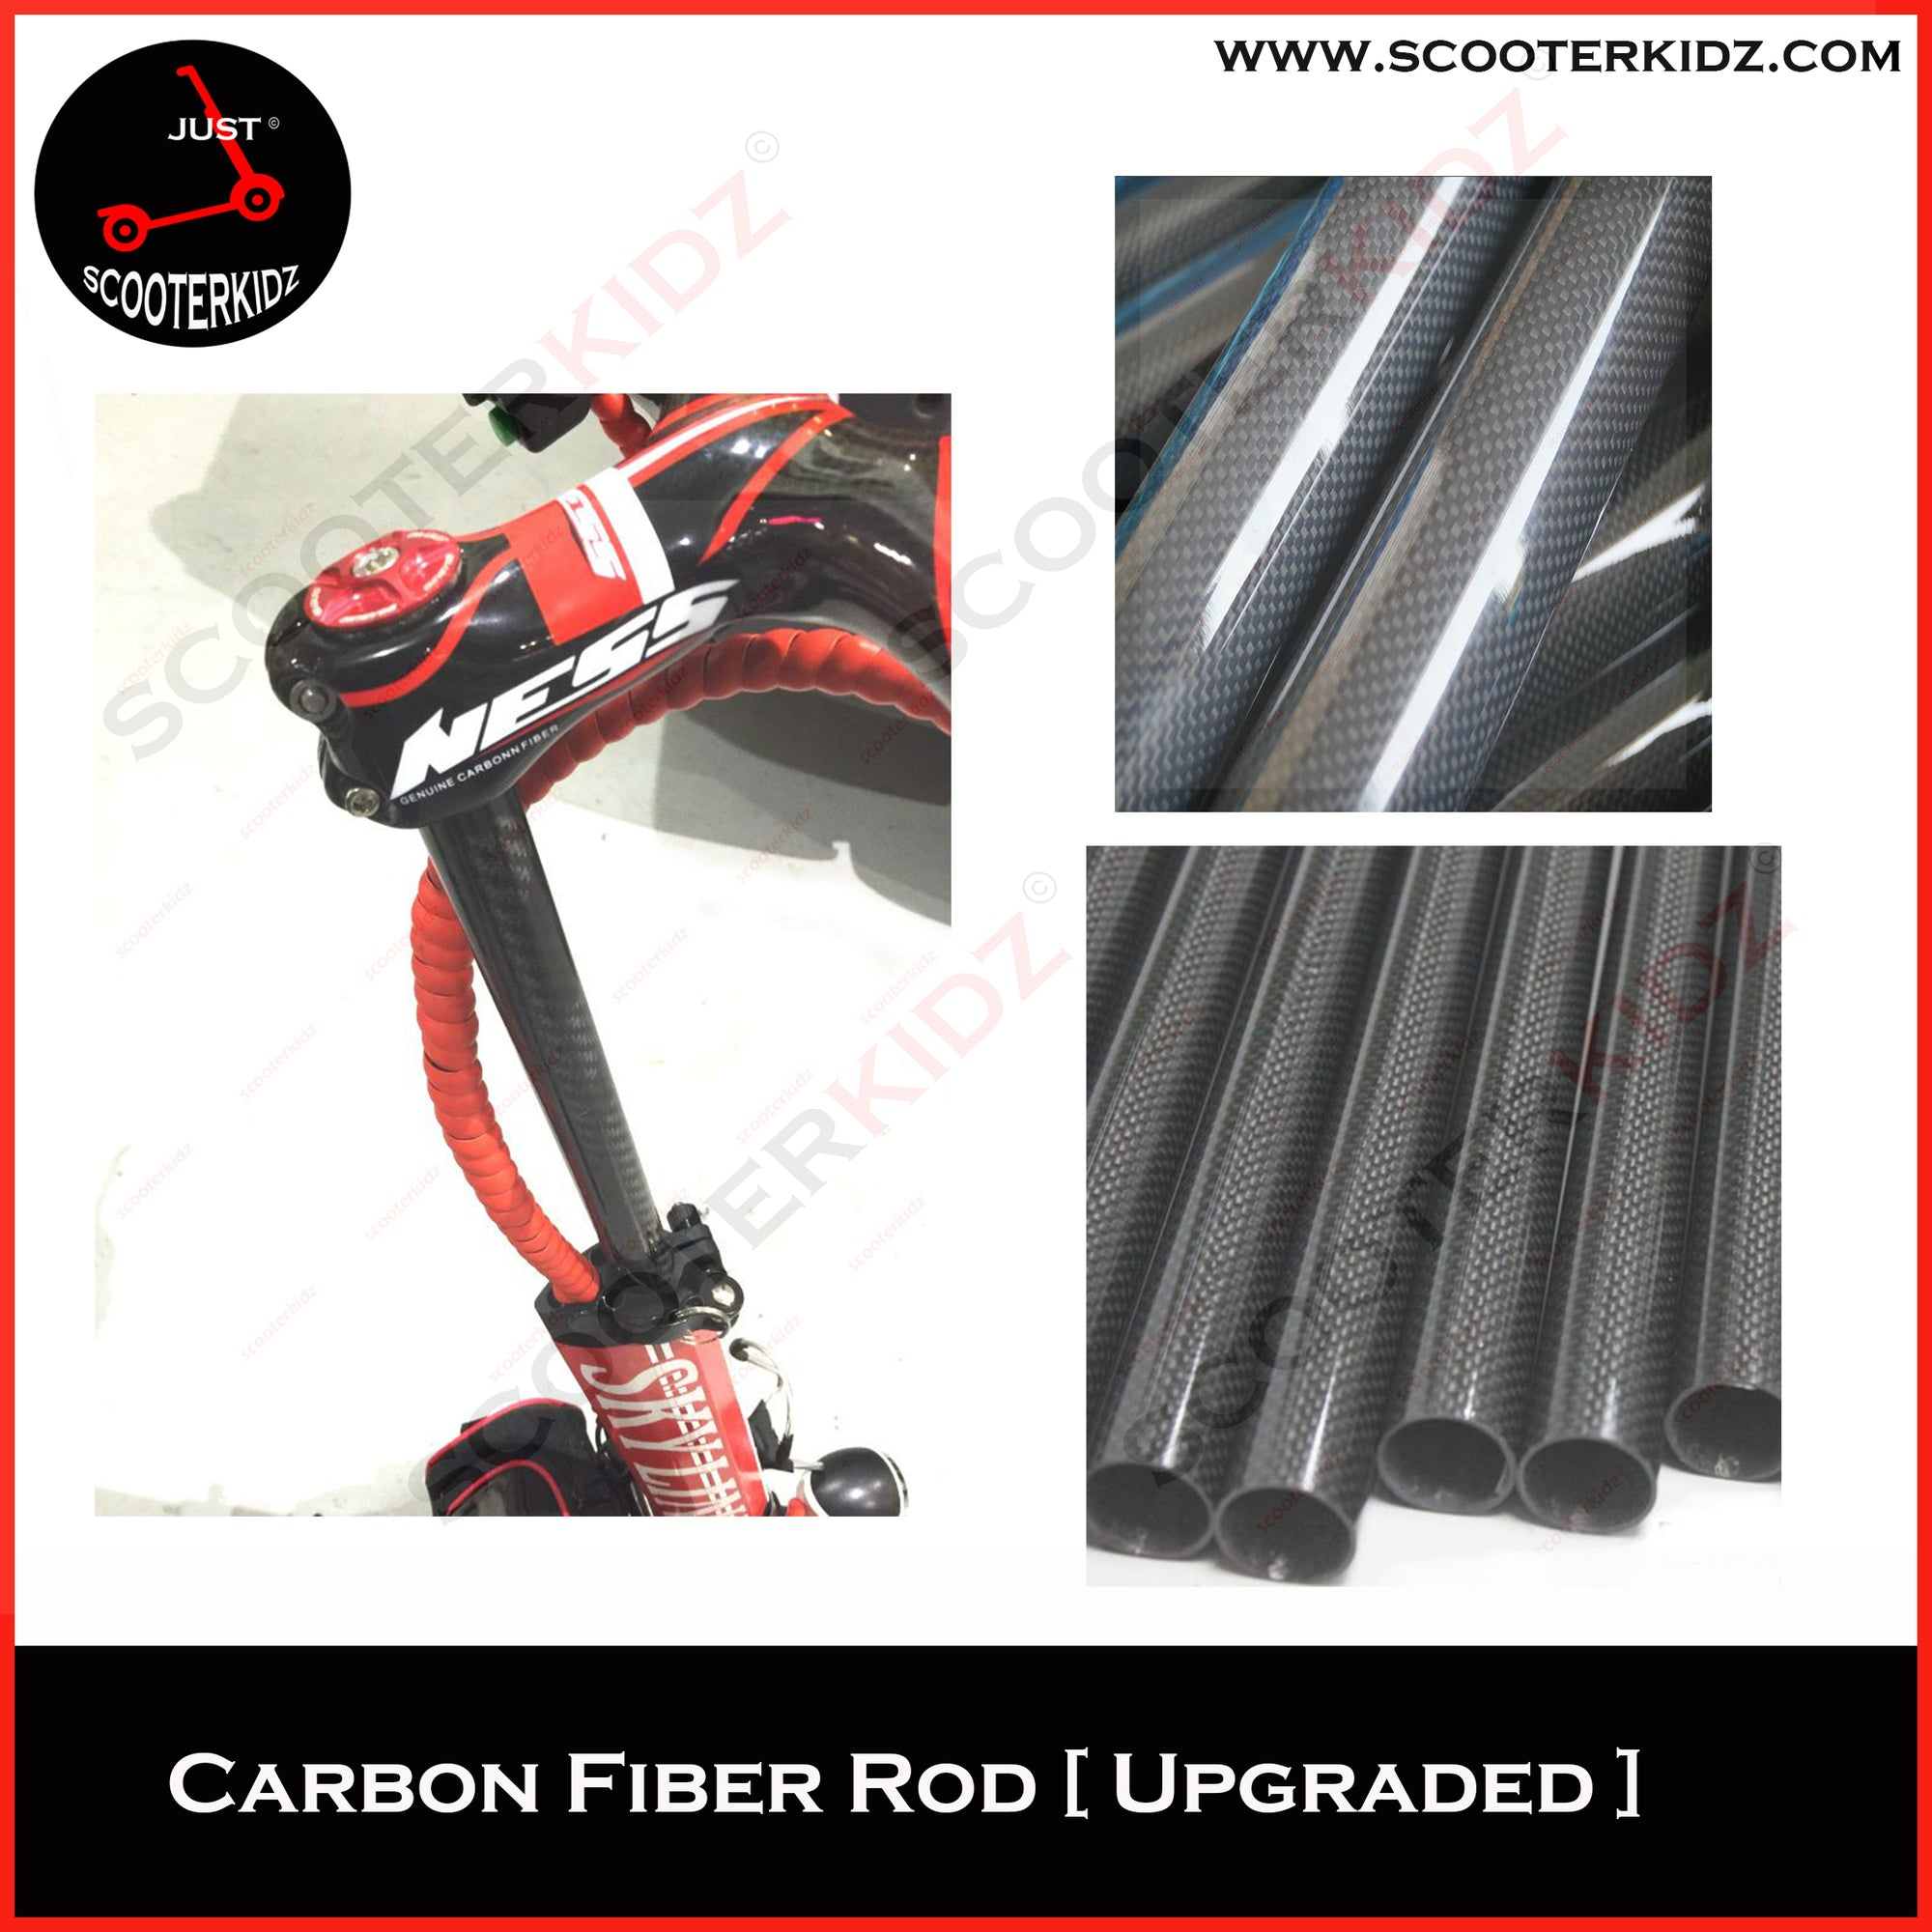 Scooterkidz Carbon Fiber Steering Rod (100% Carbon Fiber, Tested) Upgraded thicker